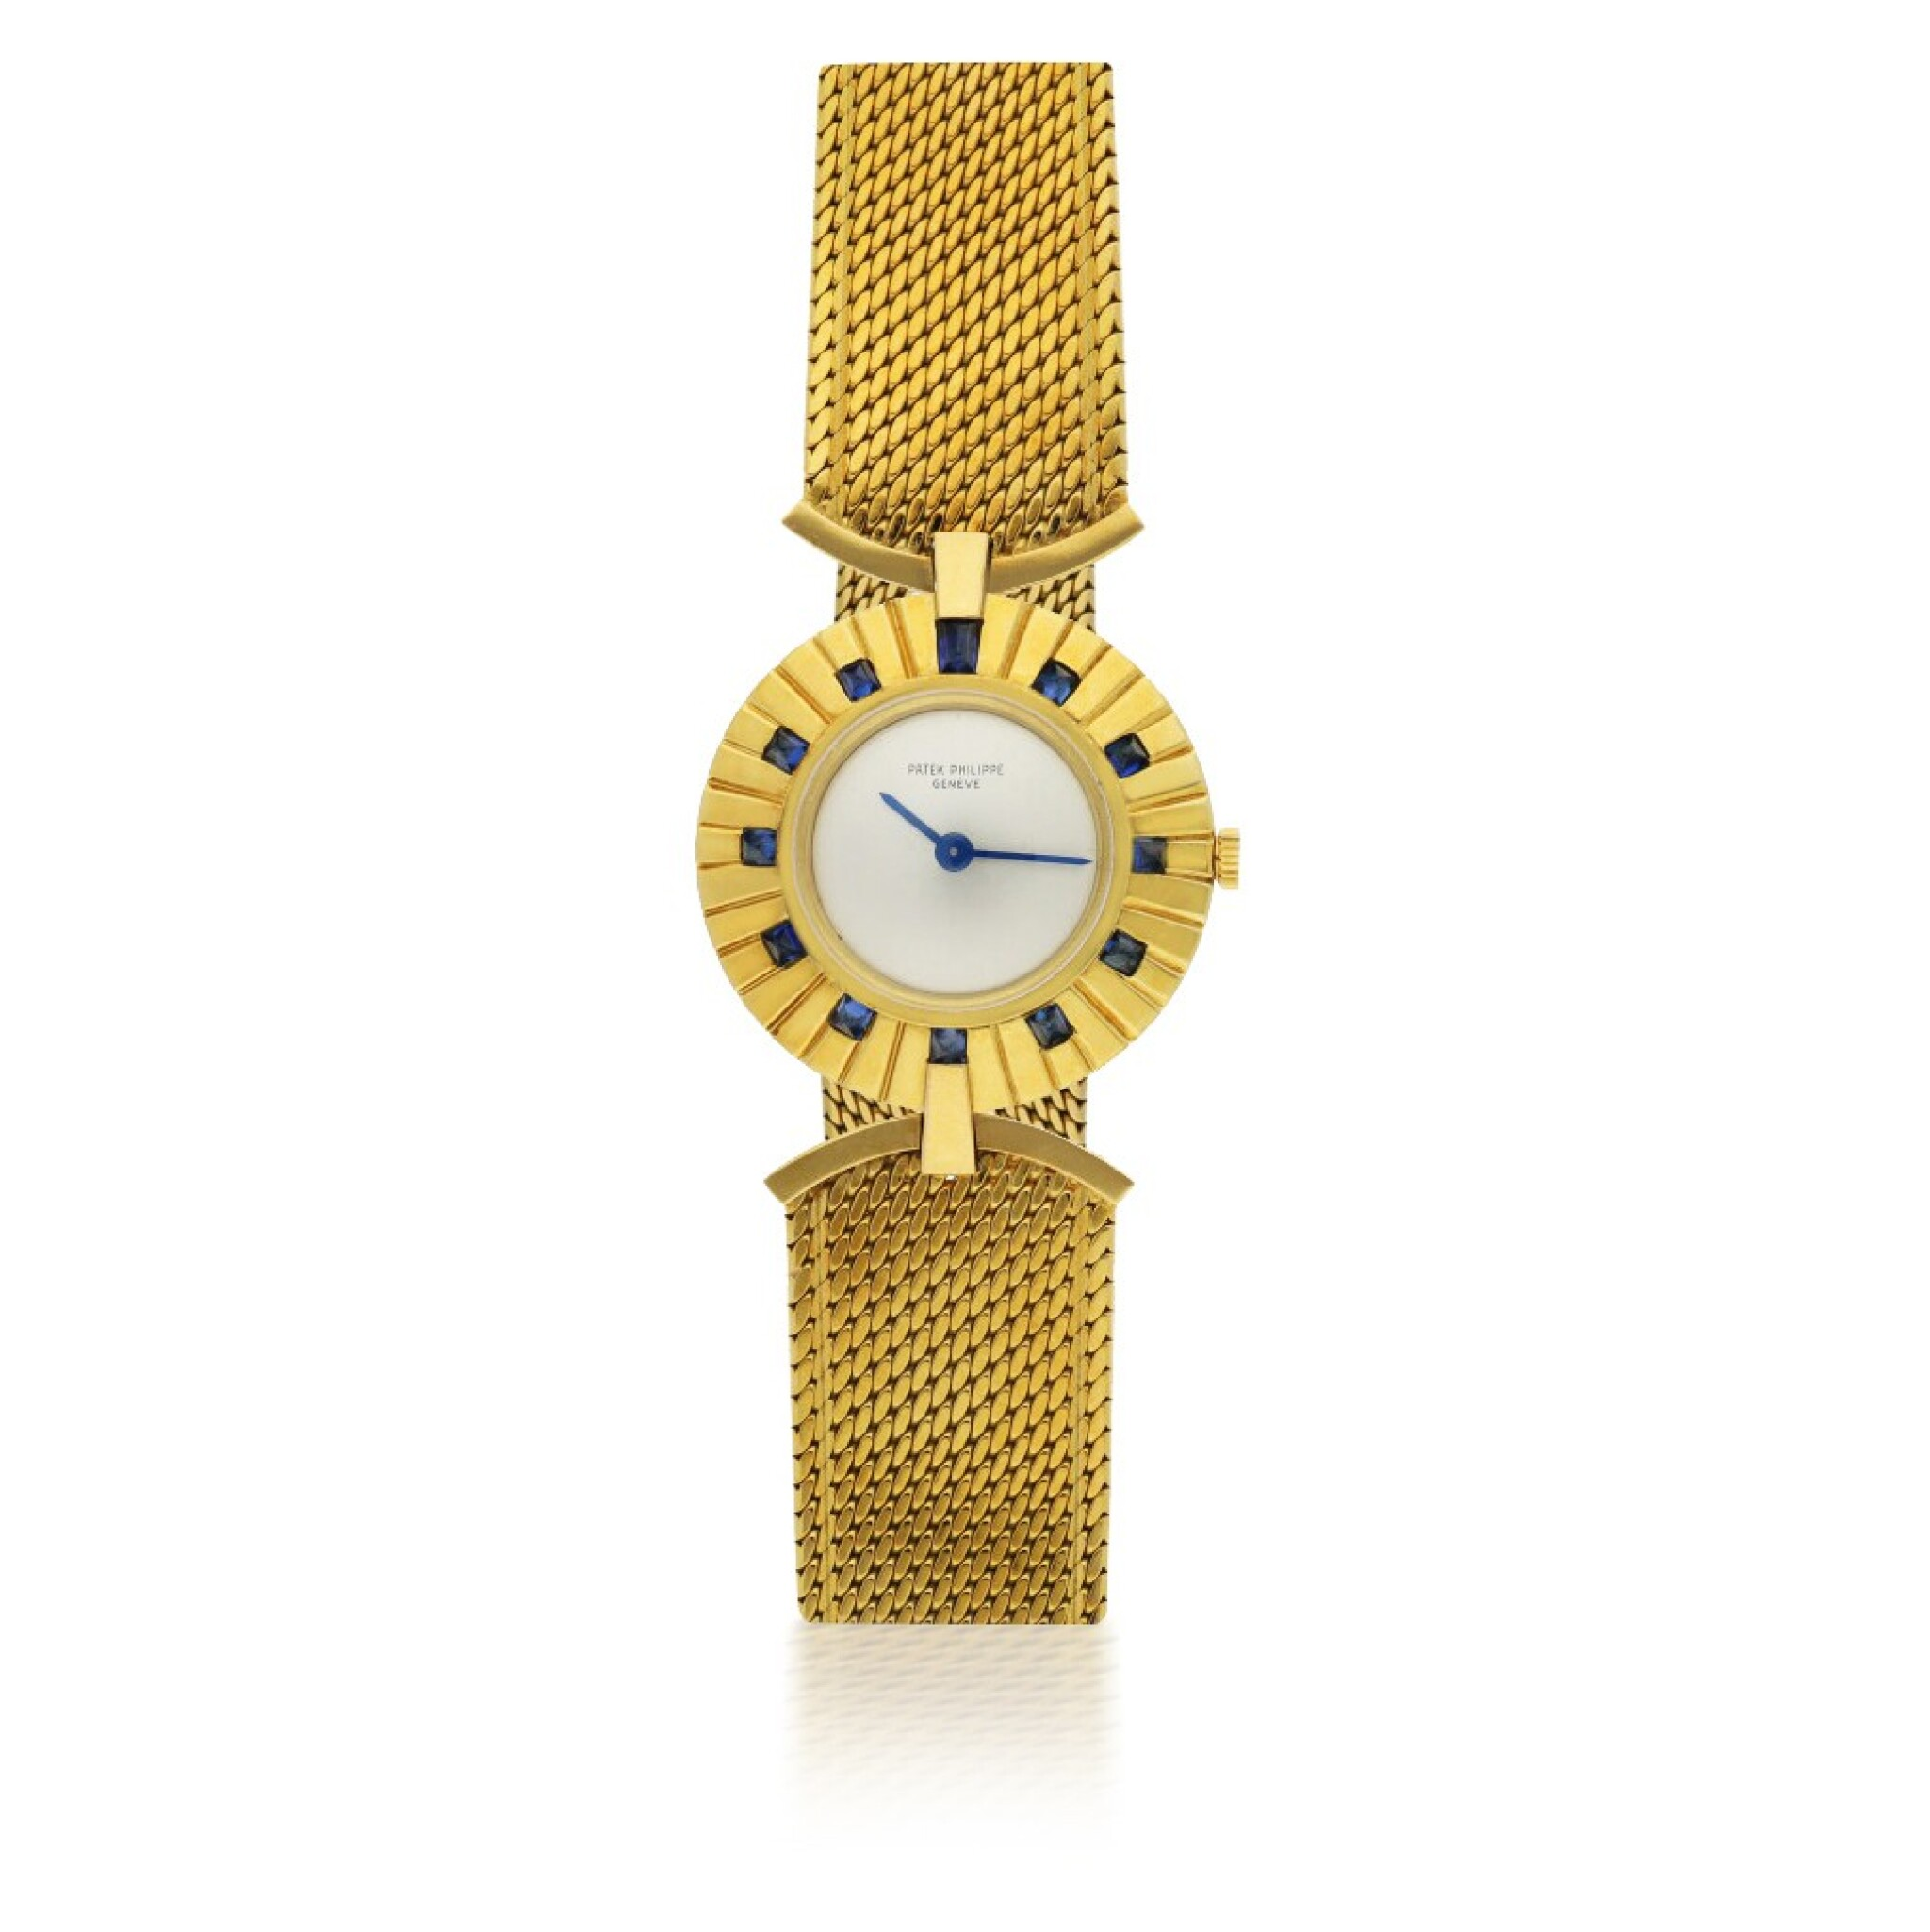 View full screen - View 1 of Lot 120. PATEK PHILIPPE   REF 3453, A YELLOW GOLD AND SAPPHIRE-SET BRACELET WATCH CIRCA 1945.